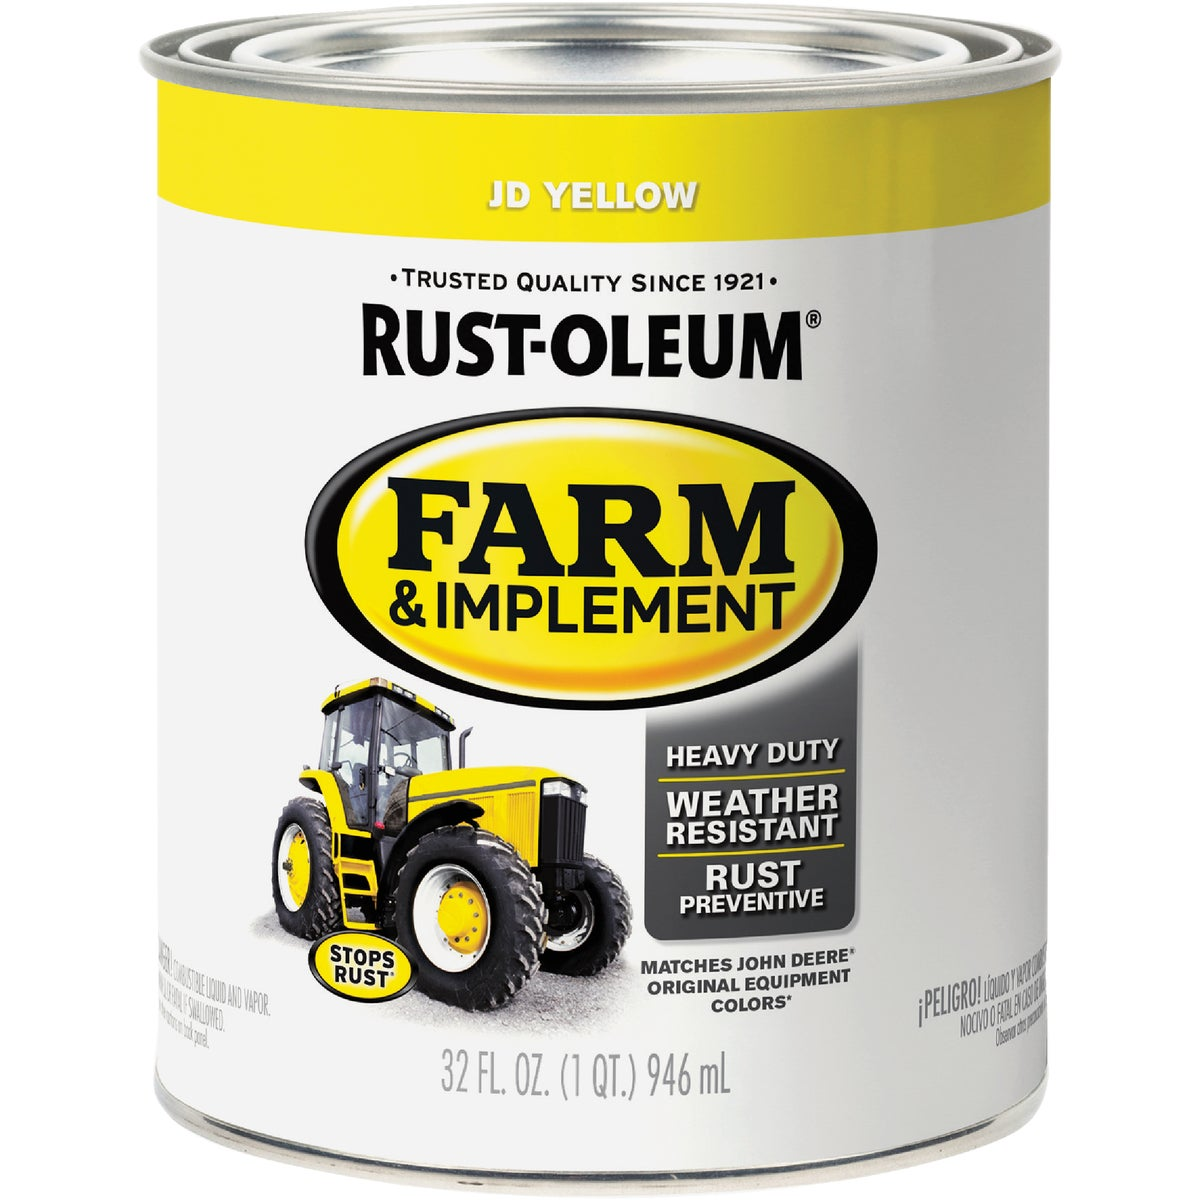 JD YELLOW IMPLMNT ENAMEL - 7443-502 by Rustoleum